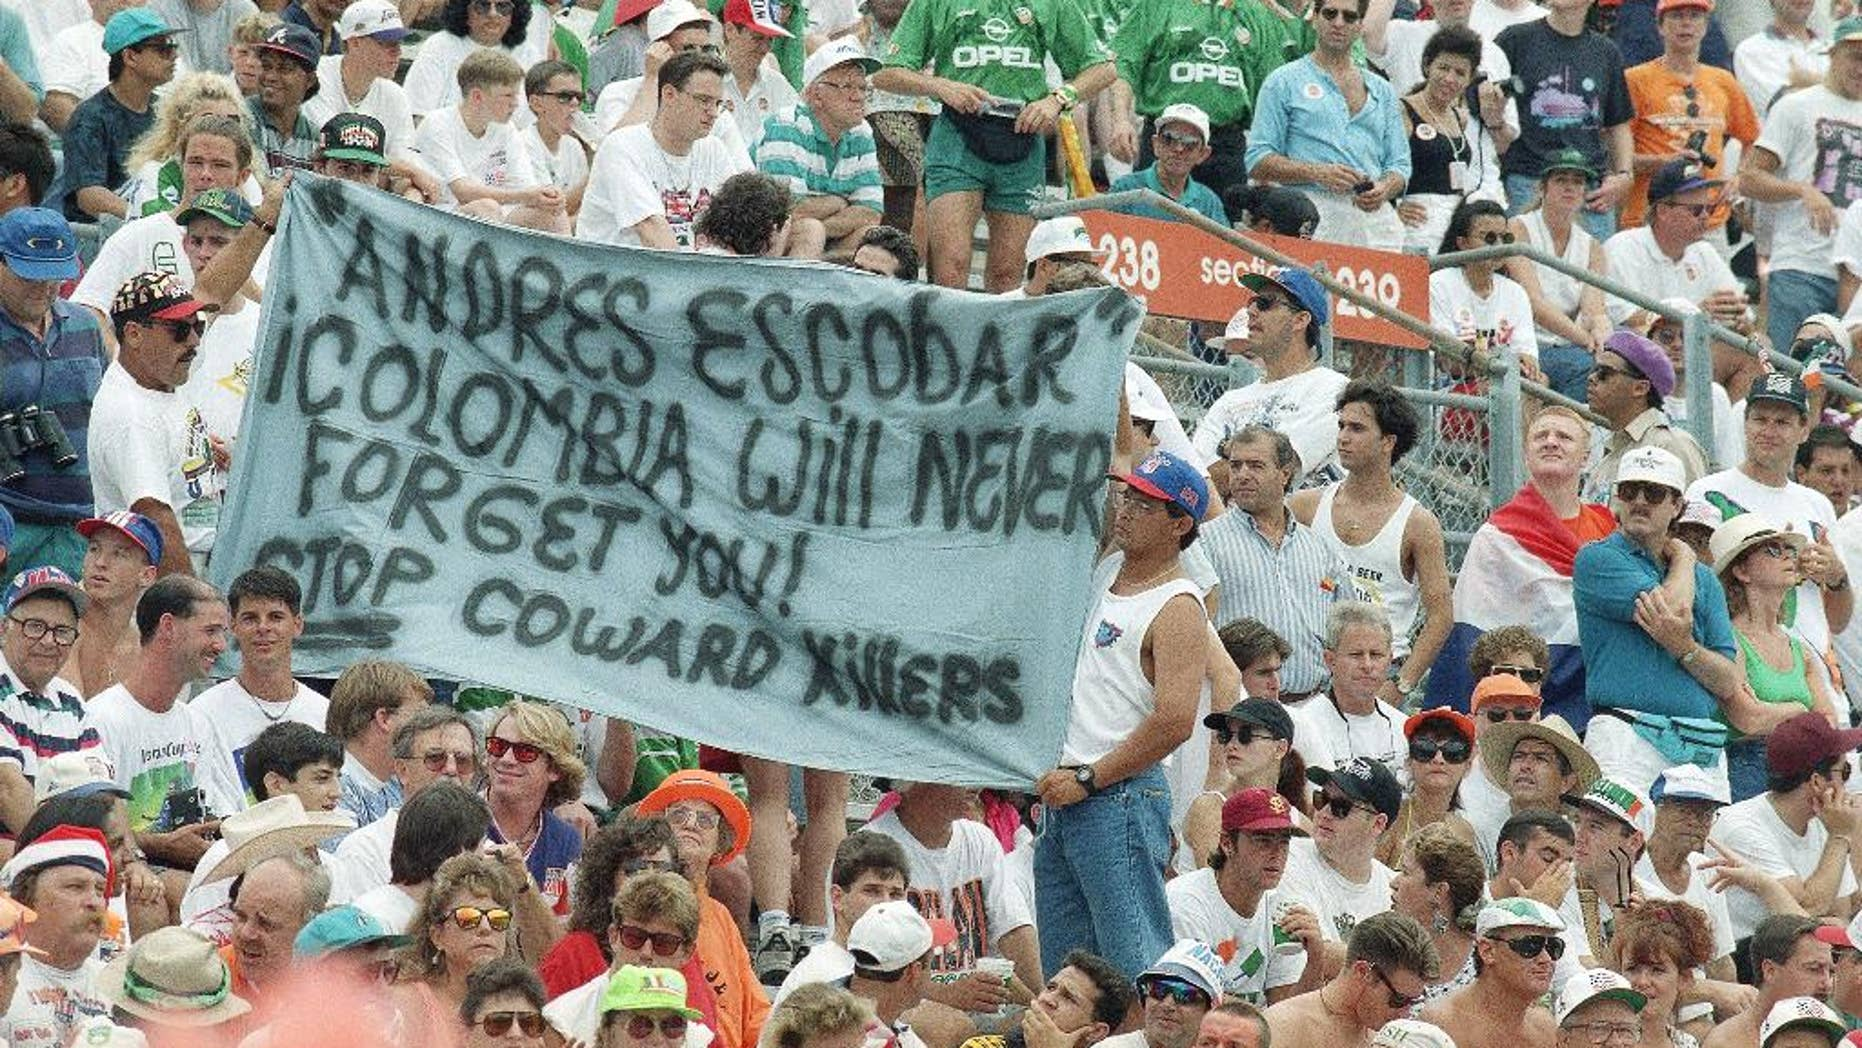 FILE - In this July 4, 1994, file photo, Fans at the World Cup match between Netherlands and Ireland hold up a banner at Orlando's Citrus Bowl in Orlando, Florida, referring to Colombian soccer player Andres Escobar who was murdered in Medellin, Colombia, after his team lost to the United States in the first round of World Cup.  The murder of Escobar 20 years ago Wednesday after he accidentally scored a goal for the other side and helped eliminate his team from the World Cup stands in stark contrast to the national squad's celebrated success in this 2014 Soccer World Cup in Brazil. (AP Photo/Lynne Sladky, File)